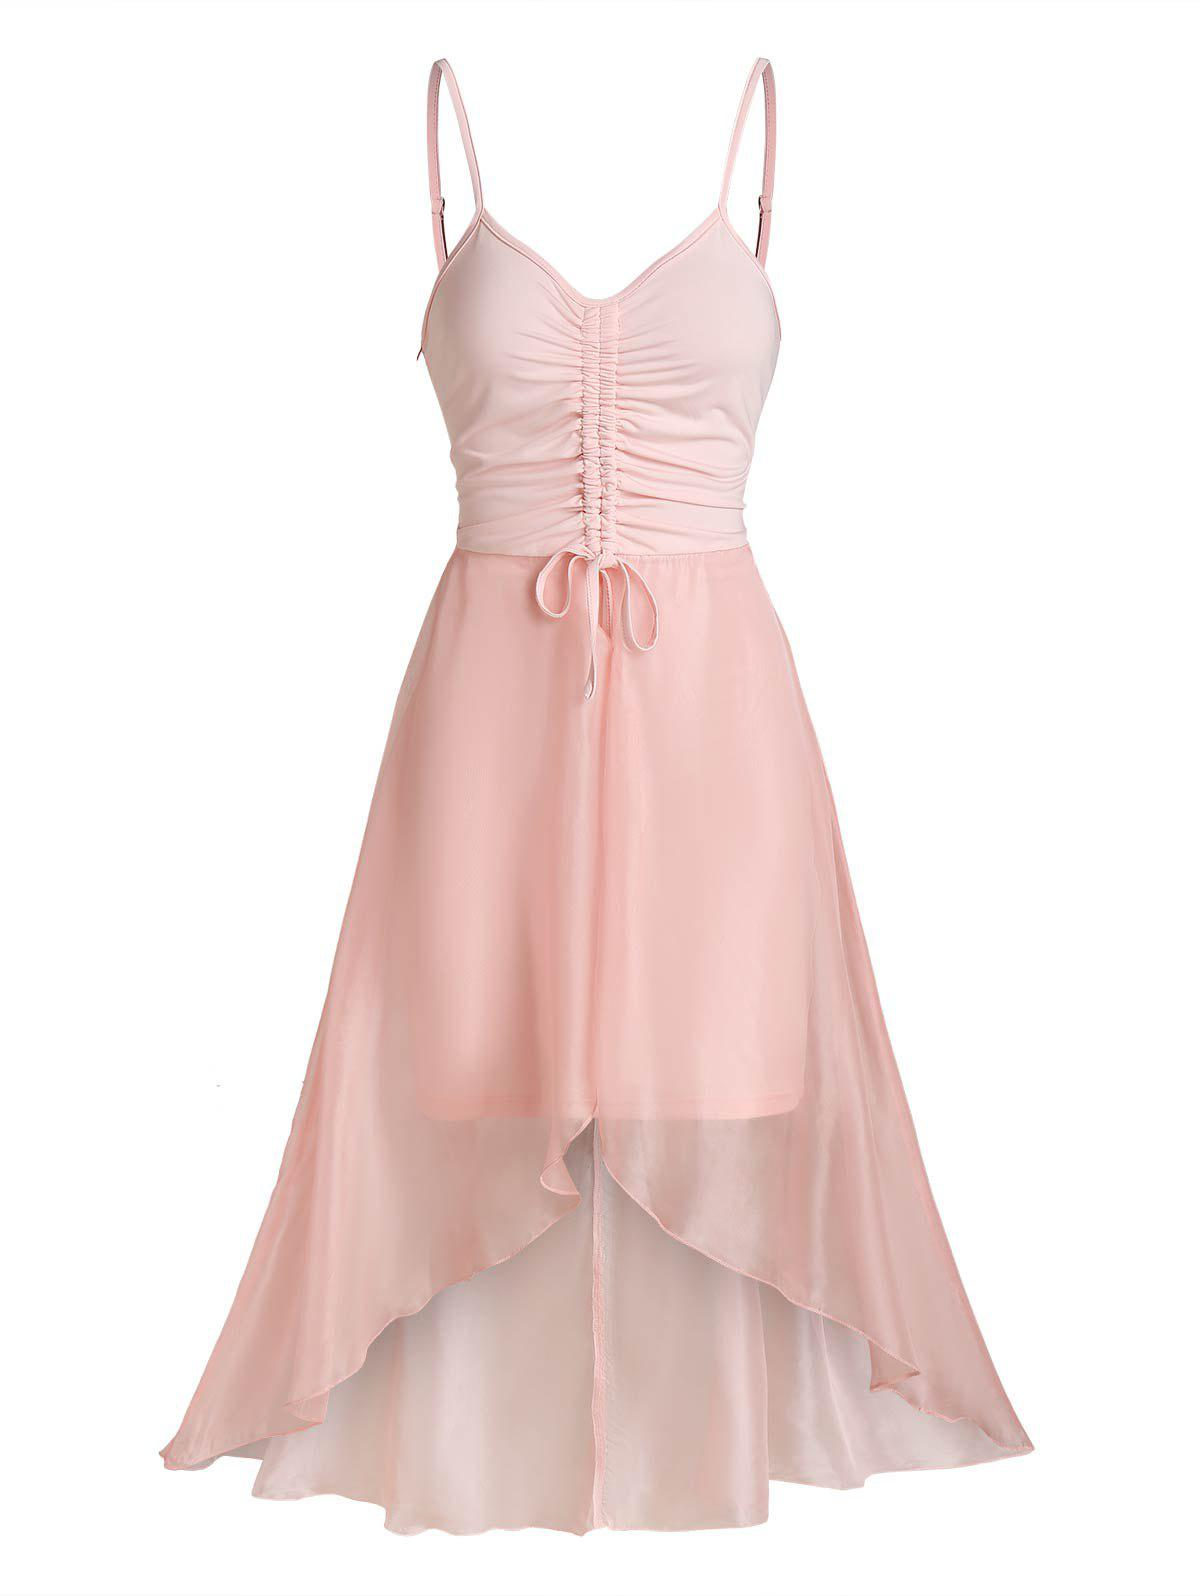 Chiffon Insert Cinched High Low Dress - LIGHT PINK 3XL